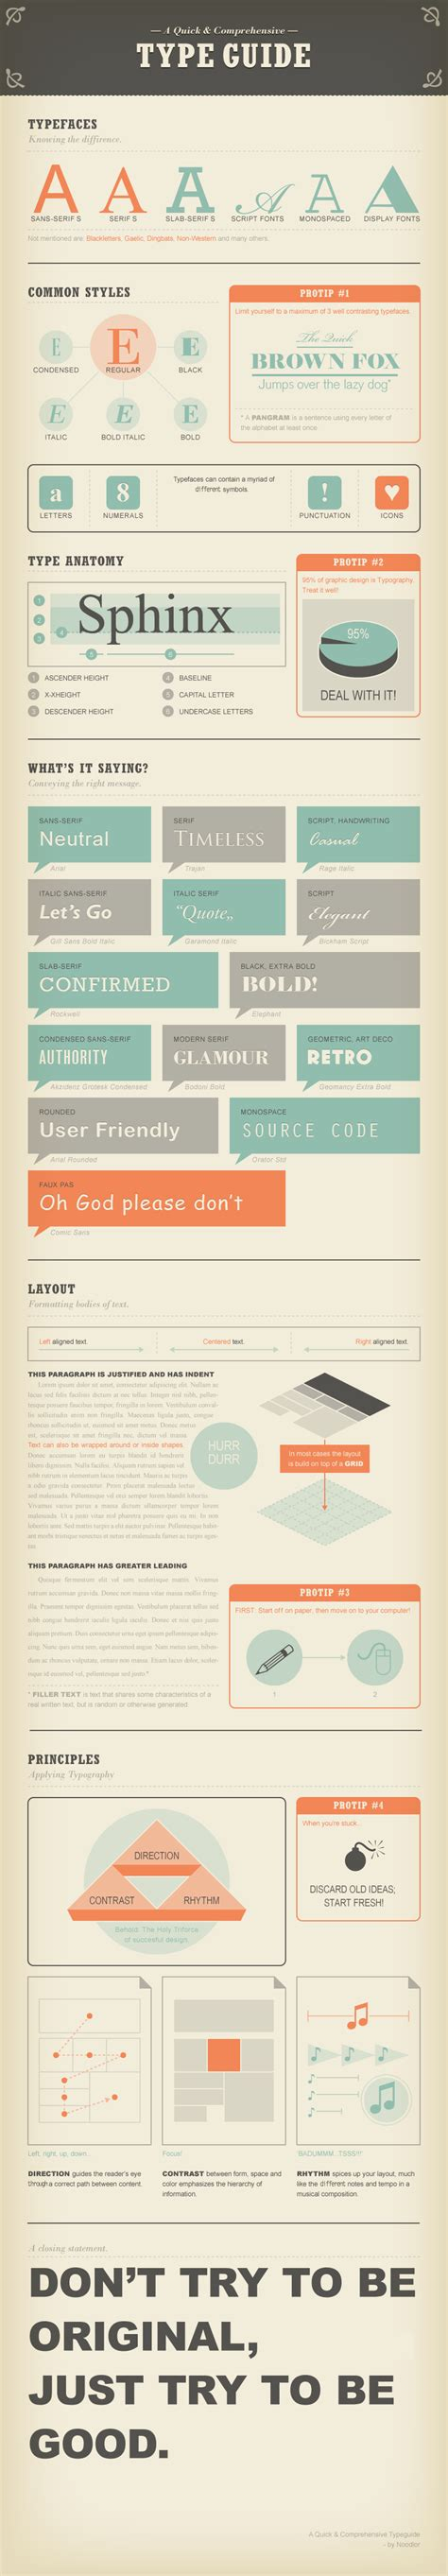 typography guide 6 inspiring exles of infographic design bonus desgr